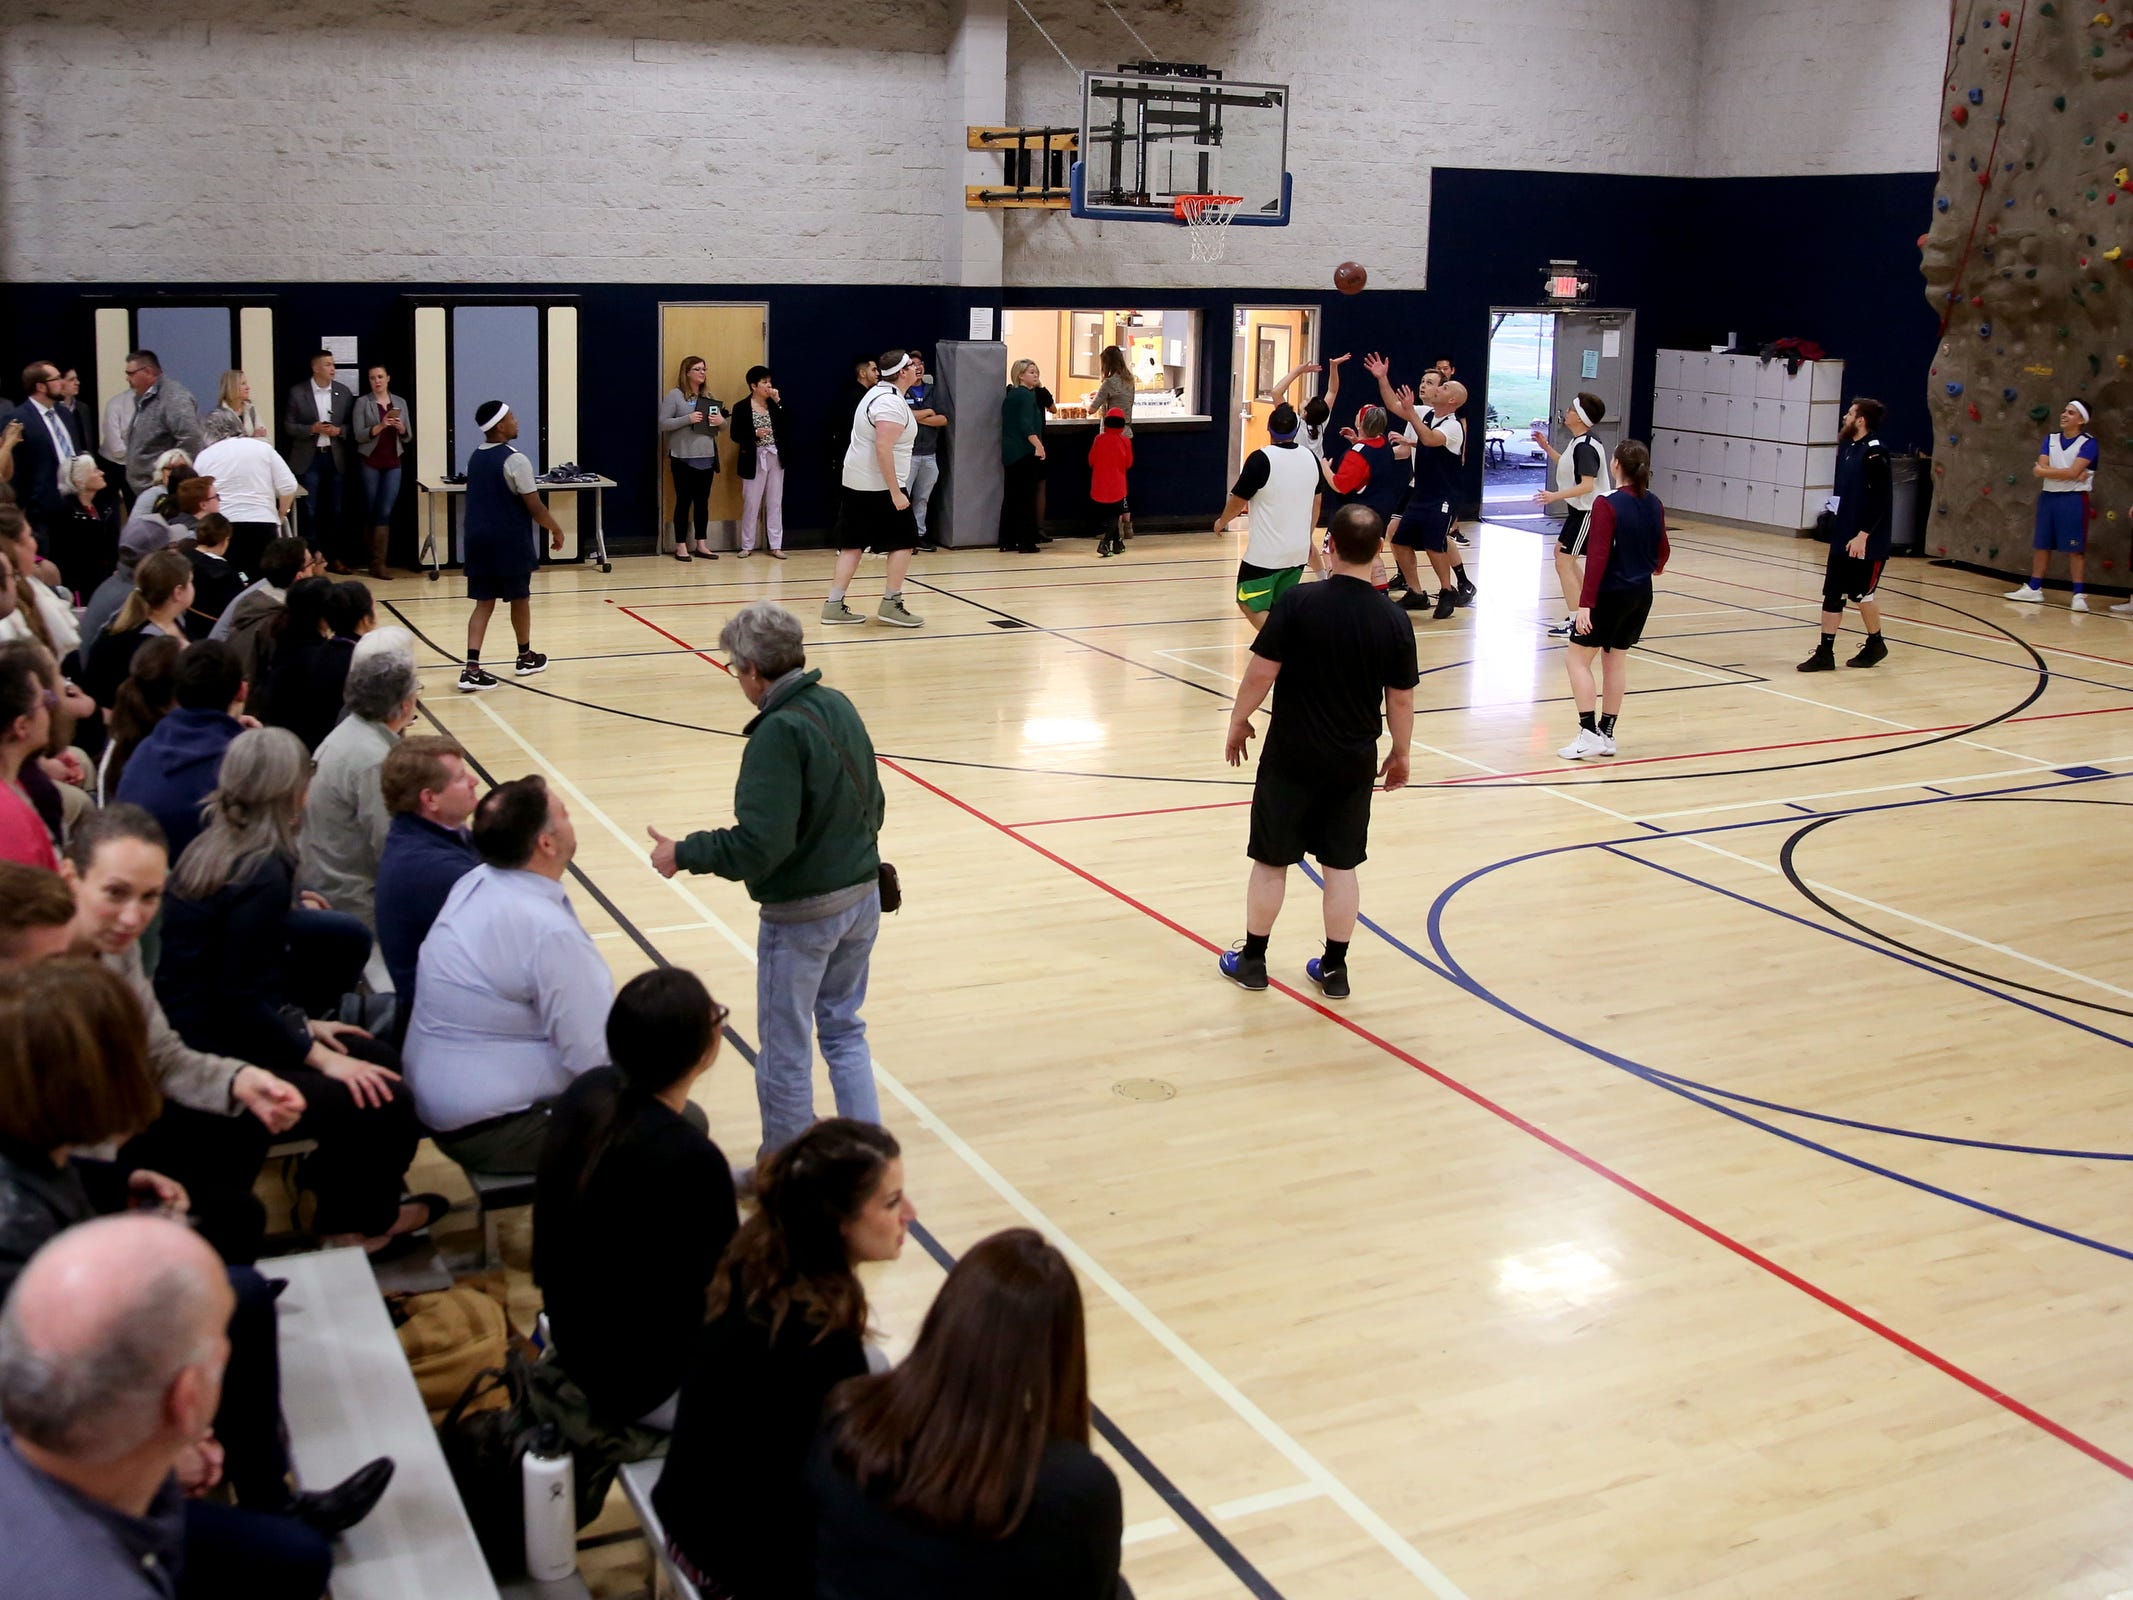 The second annual House vs. Senate charity basketball tournament at the Boys & Girls Club in Salem on March 13, 2019. The tournament raised more than $10,000 for the Oregon Alliance of Boys & Girls Clubs.